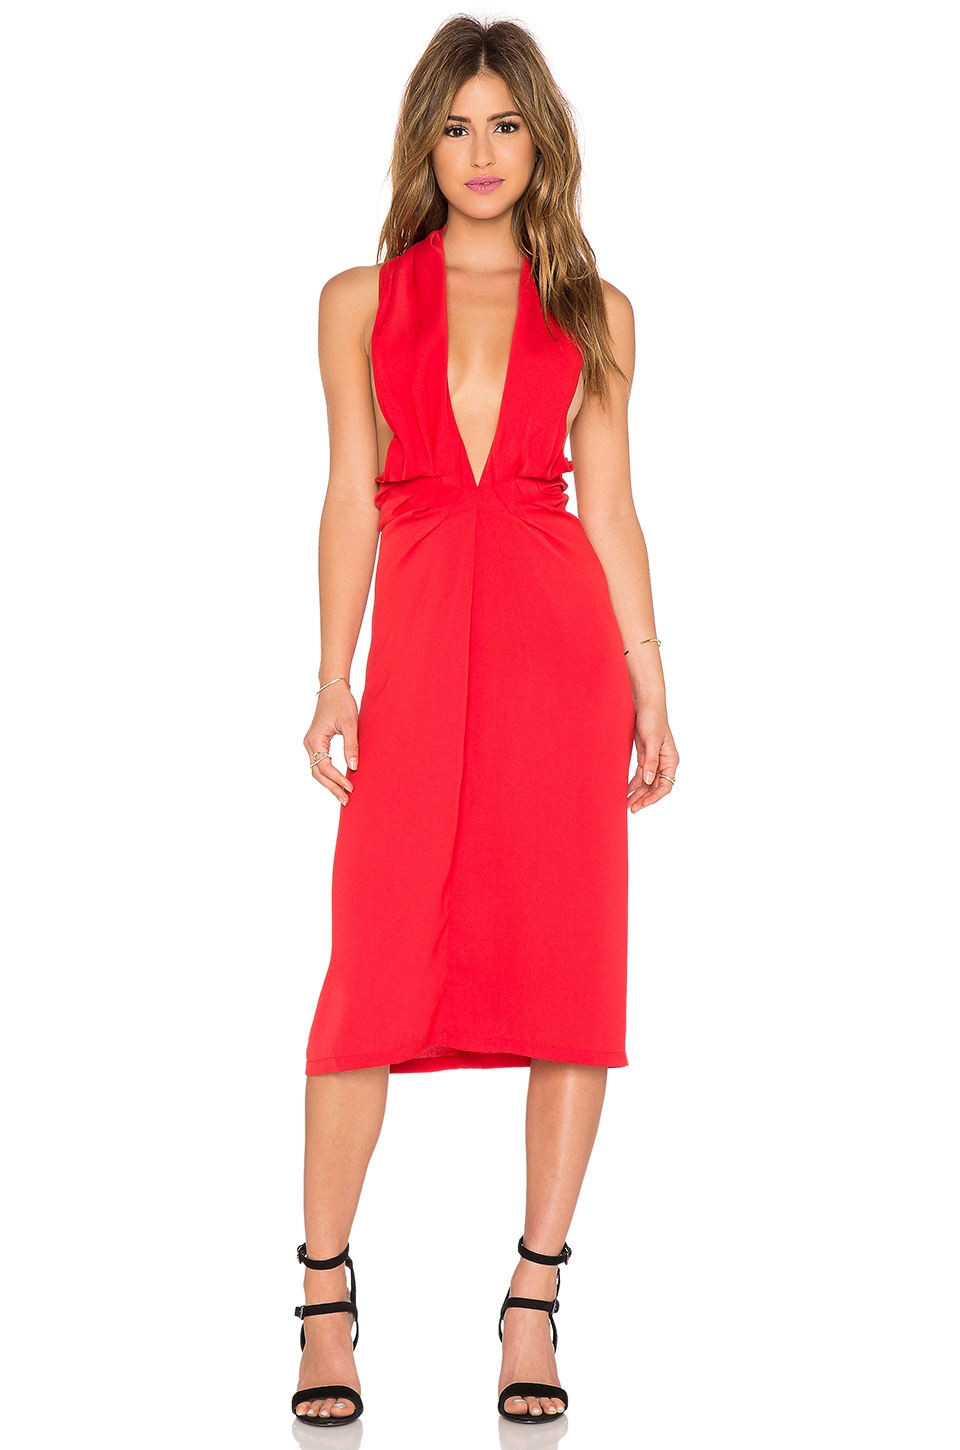 Maurie & Eve Toussaint Dress in Rouge